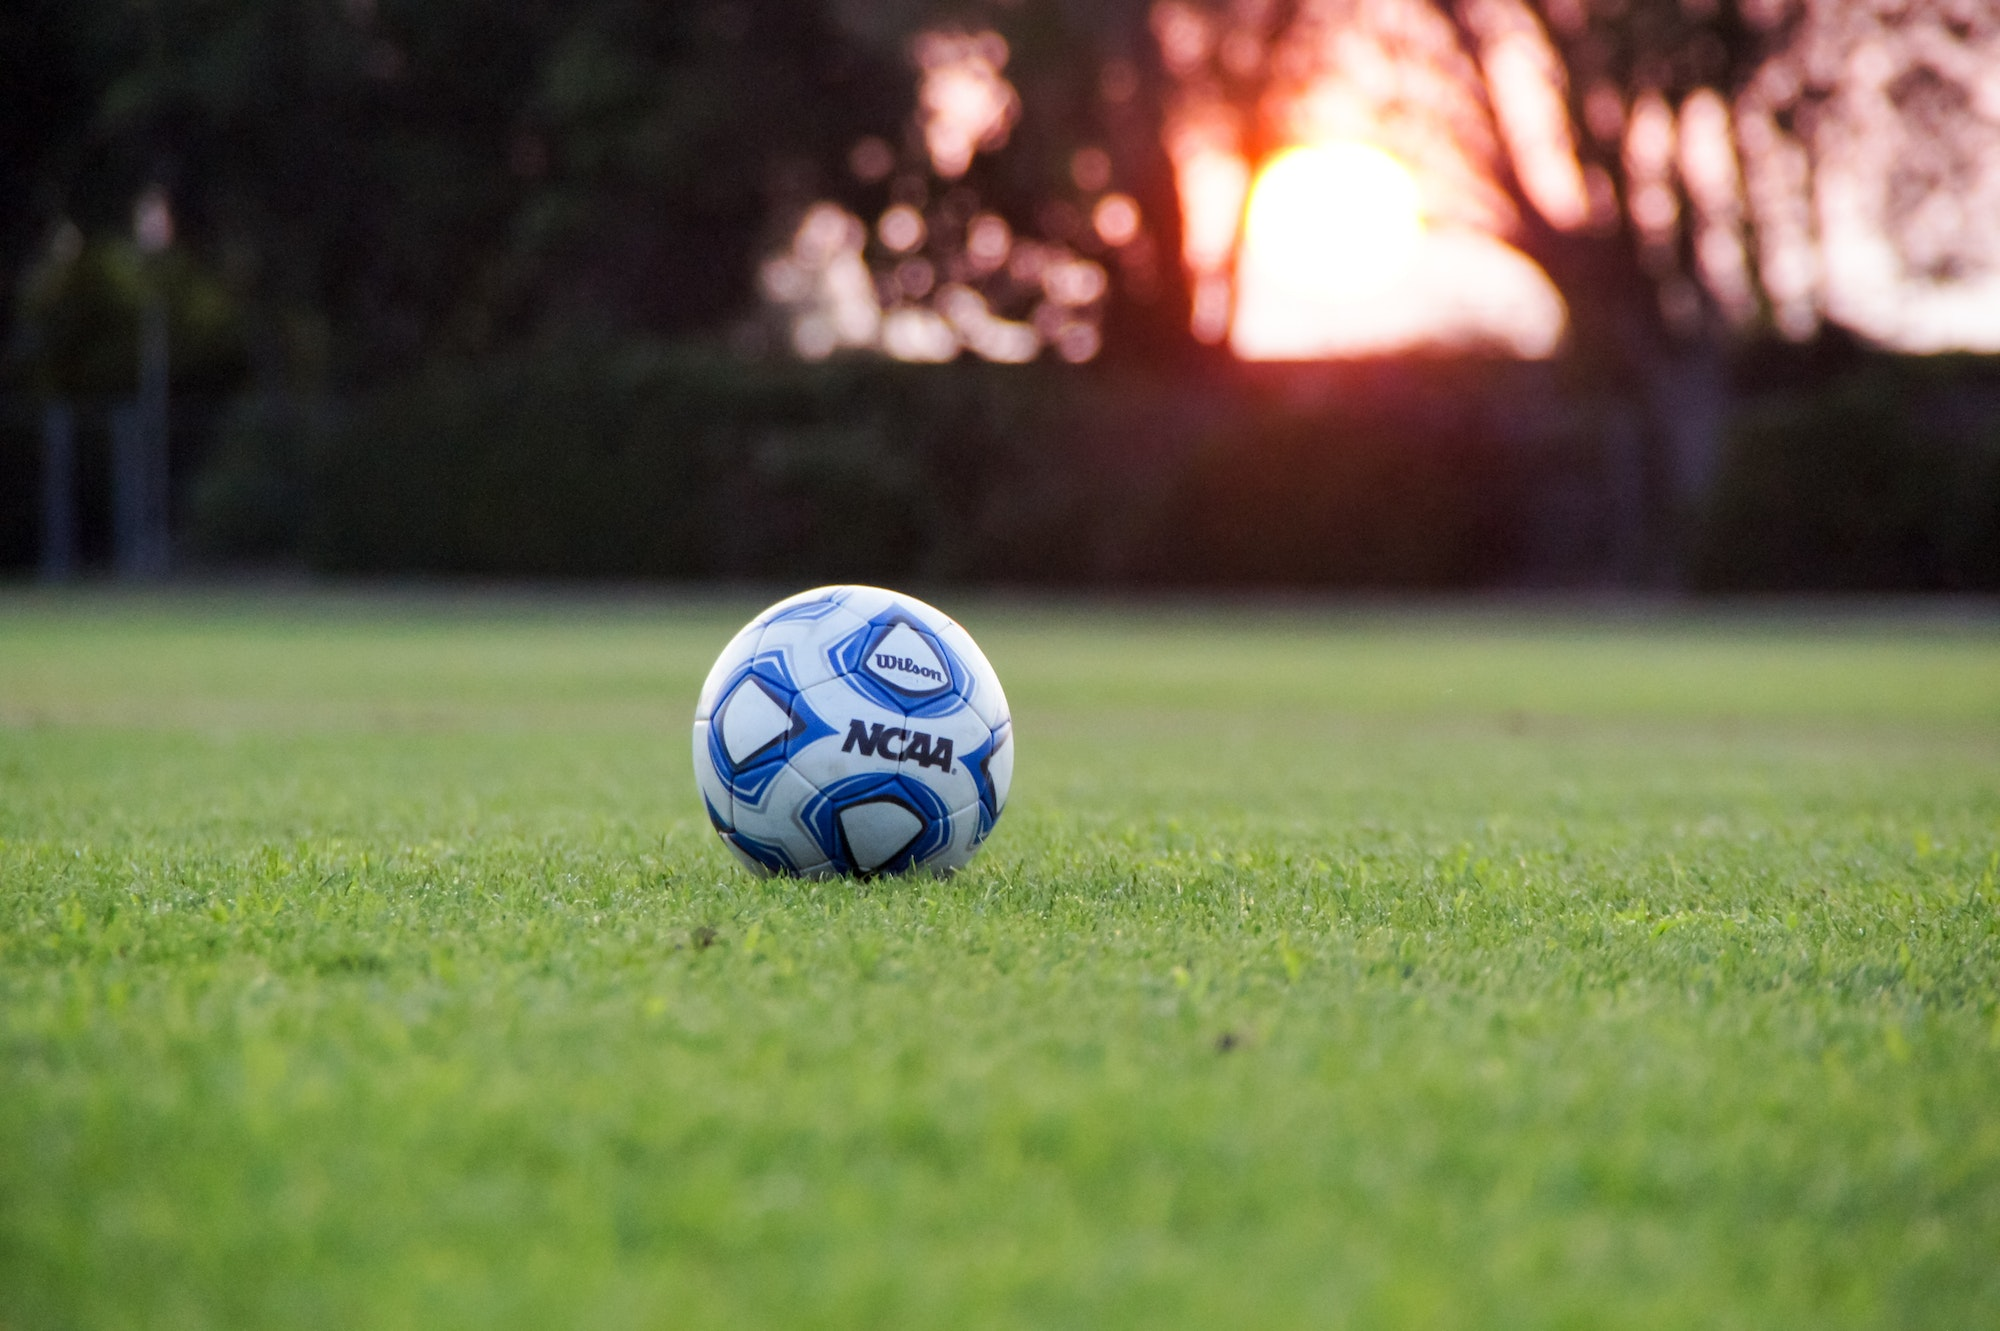 May contain: soccer ball, soccer, sport, football, sports, team, team sport, and ball